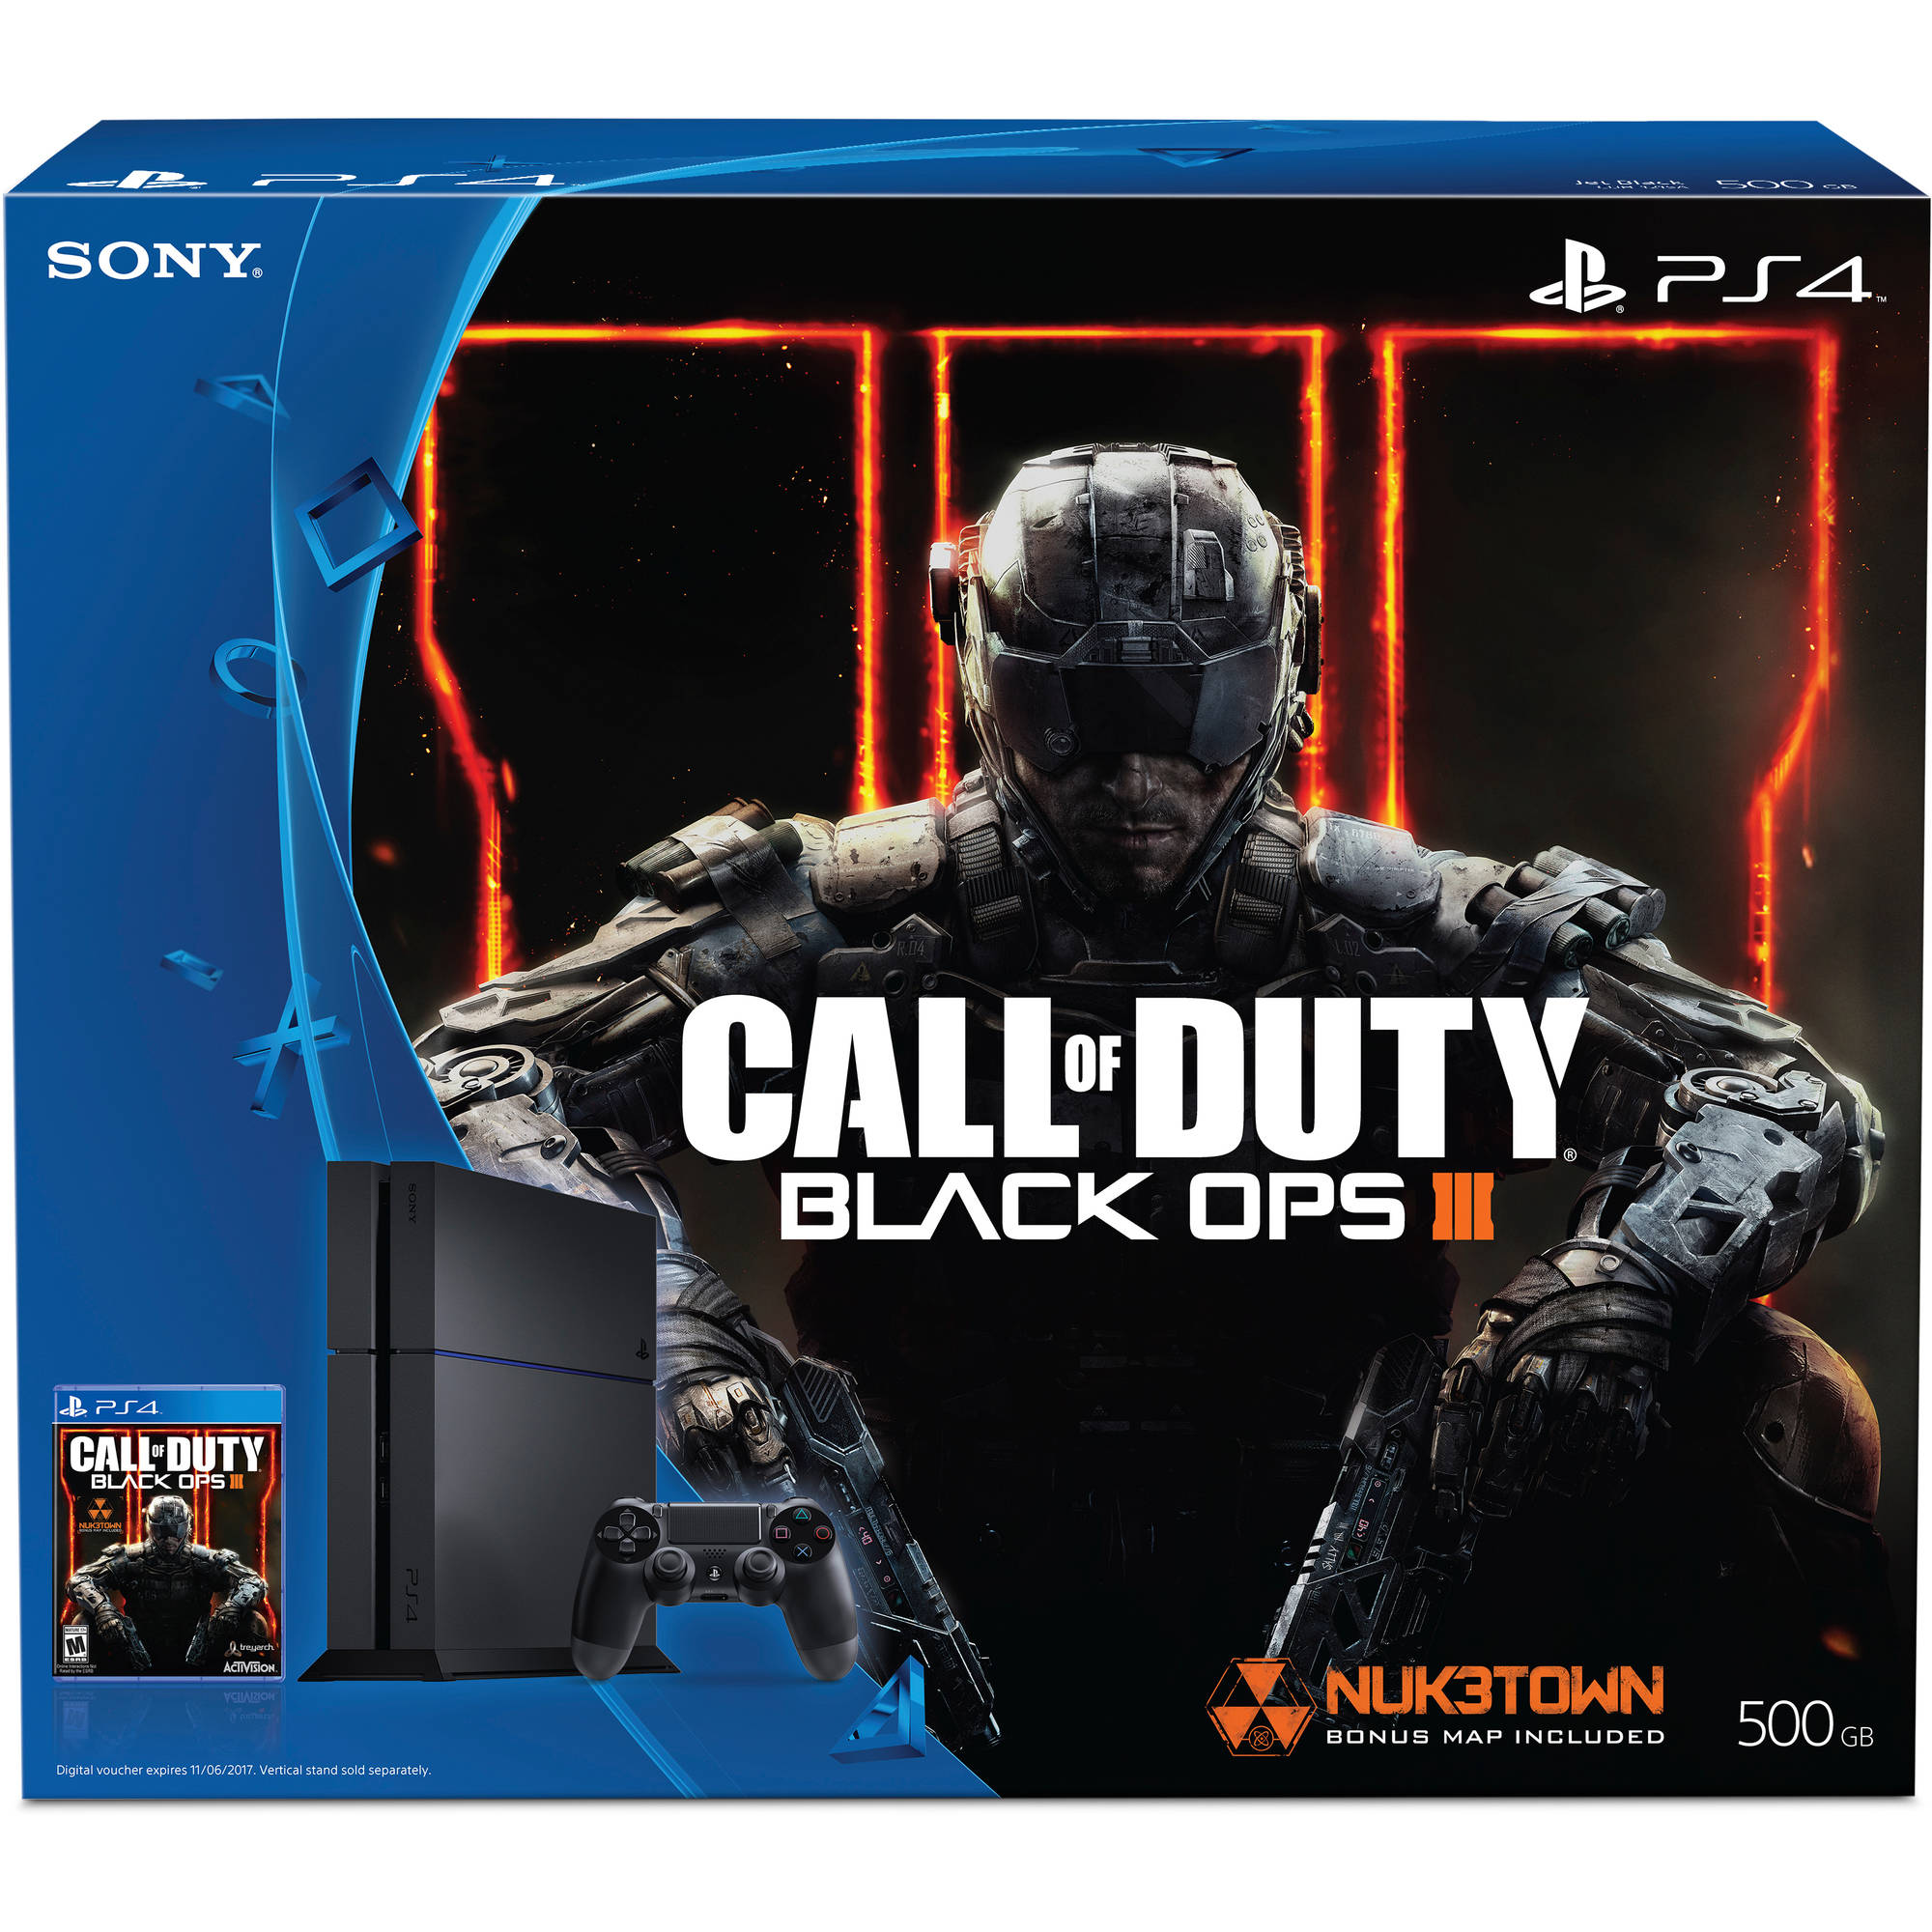 Refurbished PlayStation 4 500GB Console Bundle with Call of Duty Black Ops  III (PS4) - Walmart.com